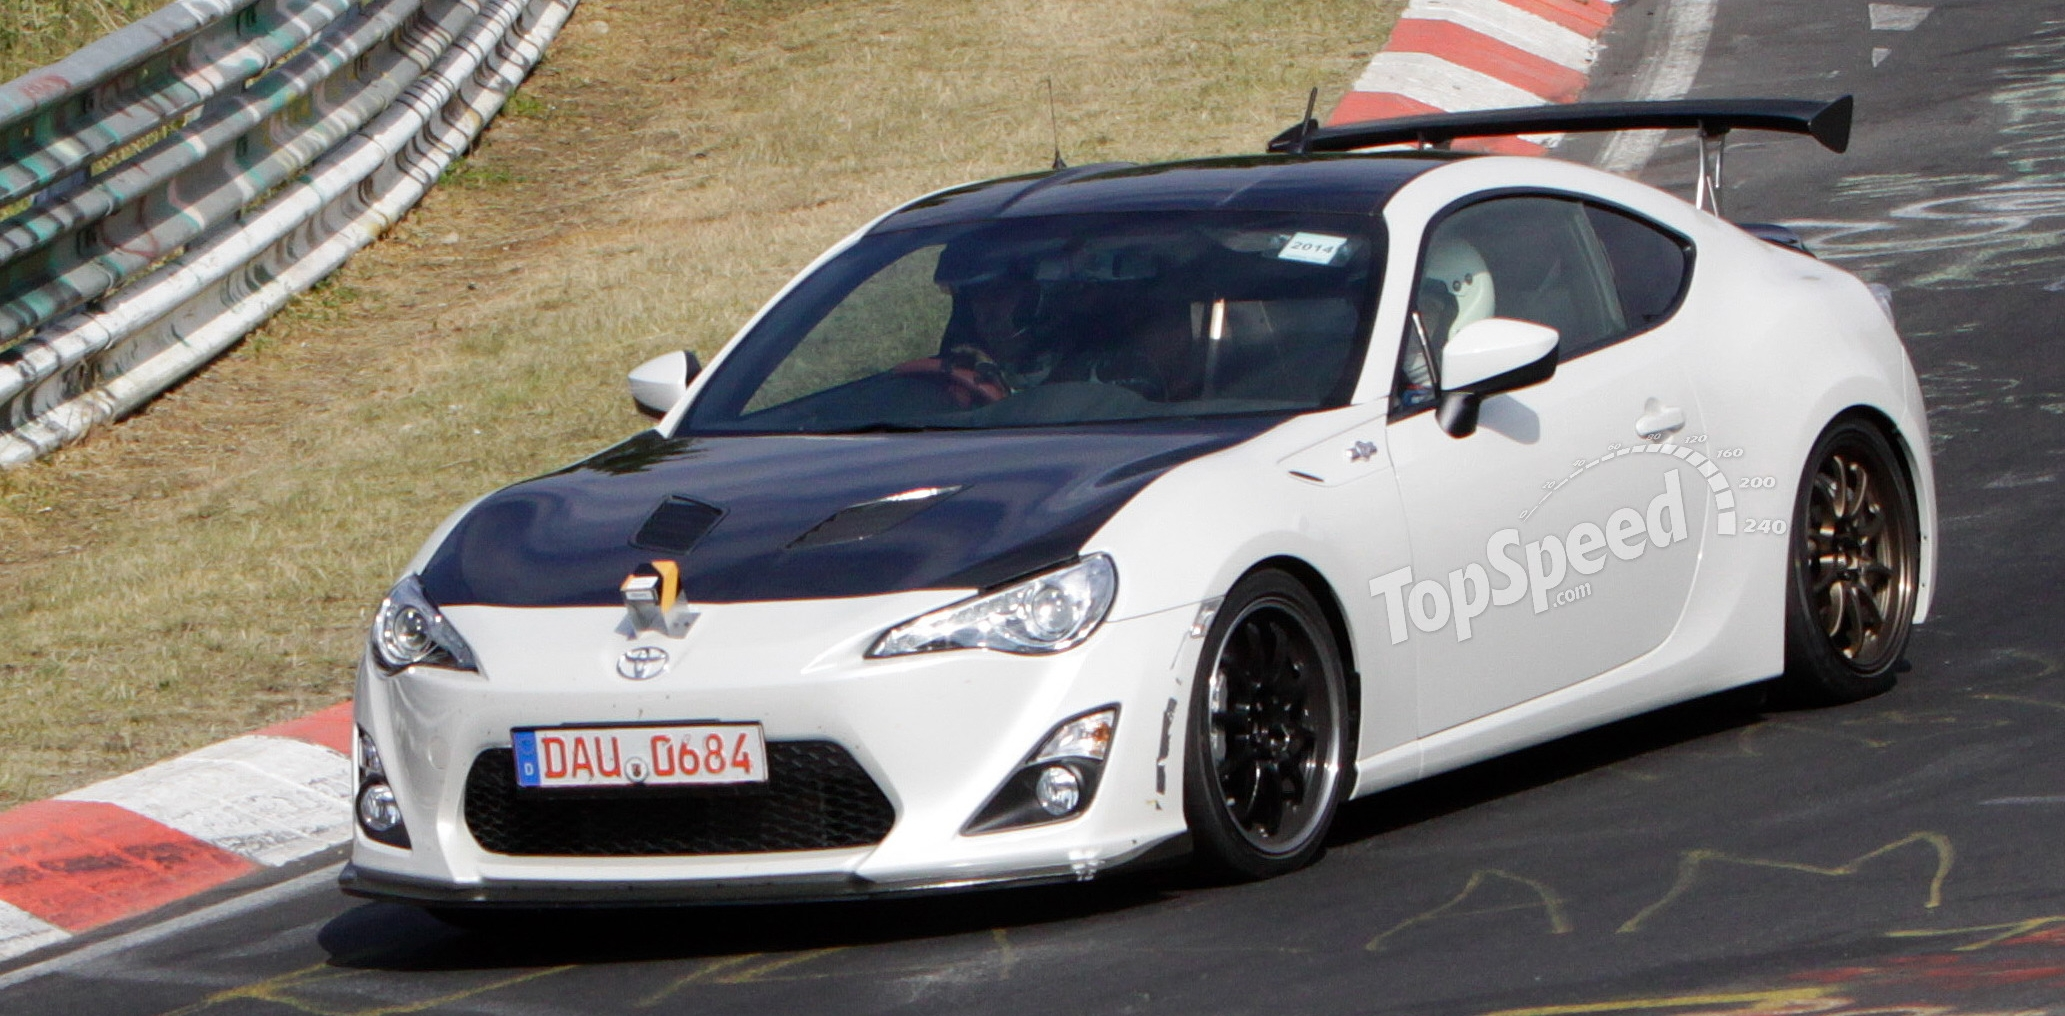 2015 Toyota Gt86 Lightweight Pictures, Photos, Wallpapers - Toyota 86 Nurburgring , HD Wallpaper & Backgrounds